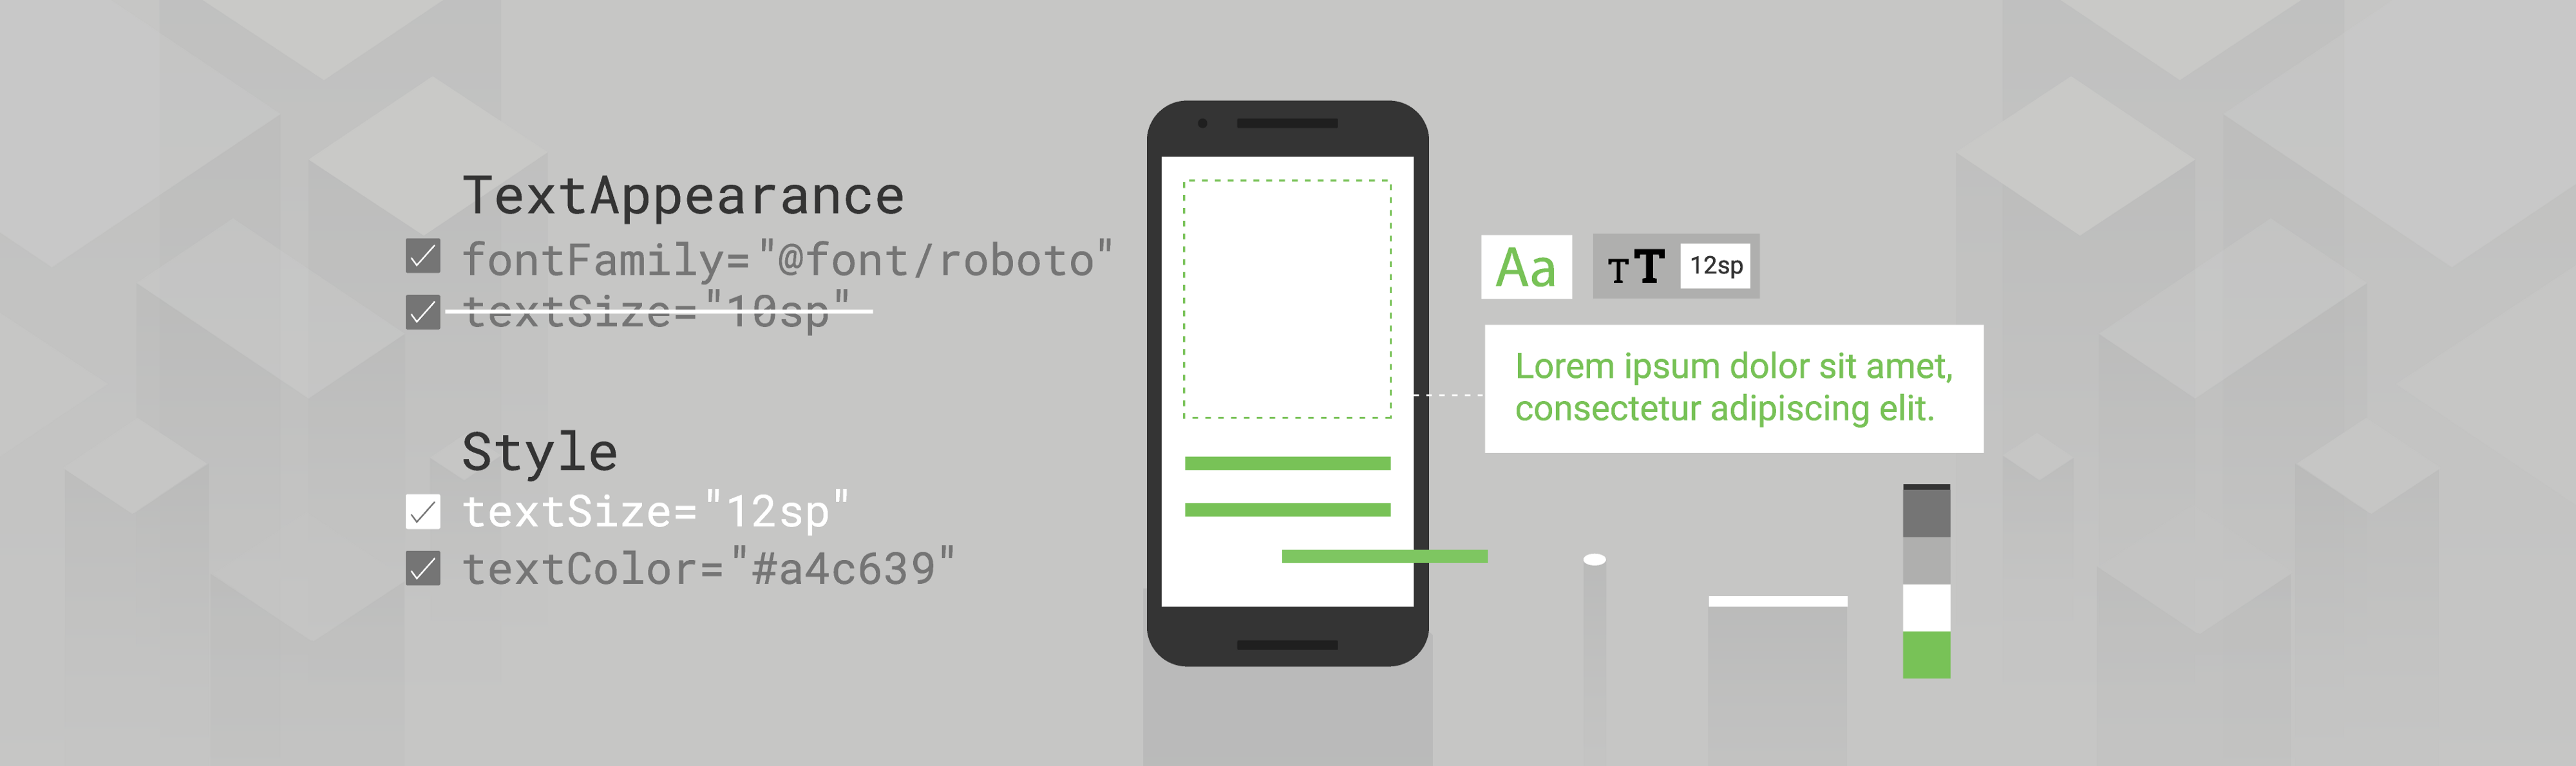 What's your text's appearance? - Android Developers - Medium